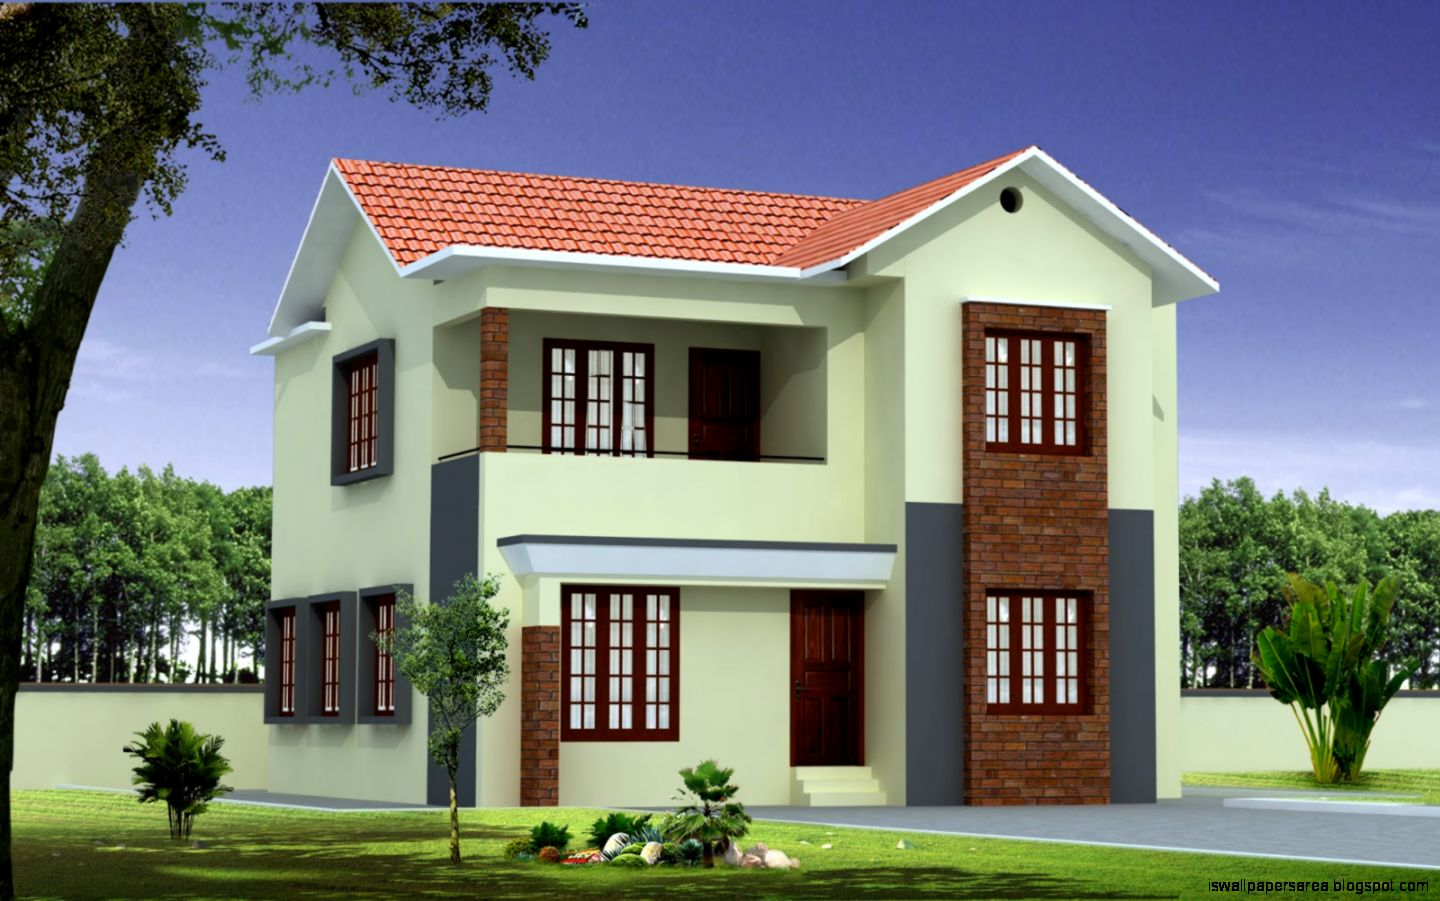 New home building designs wallpapers area for New home designs